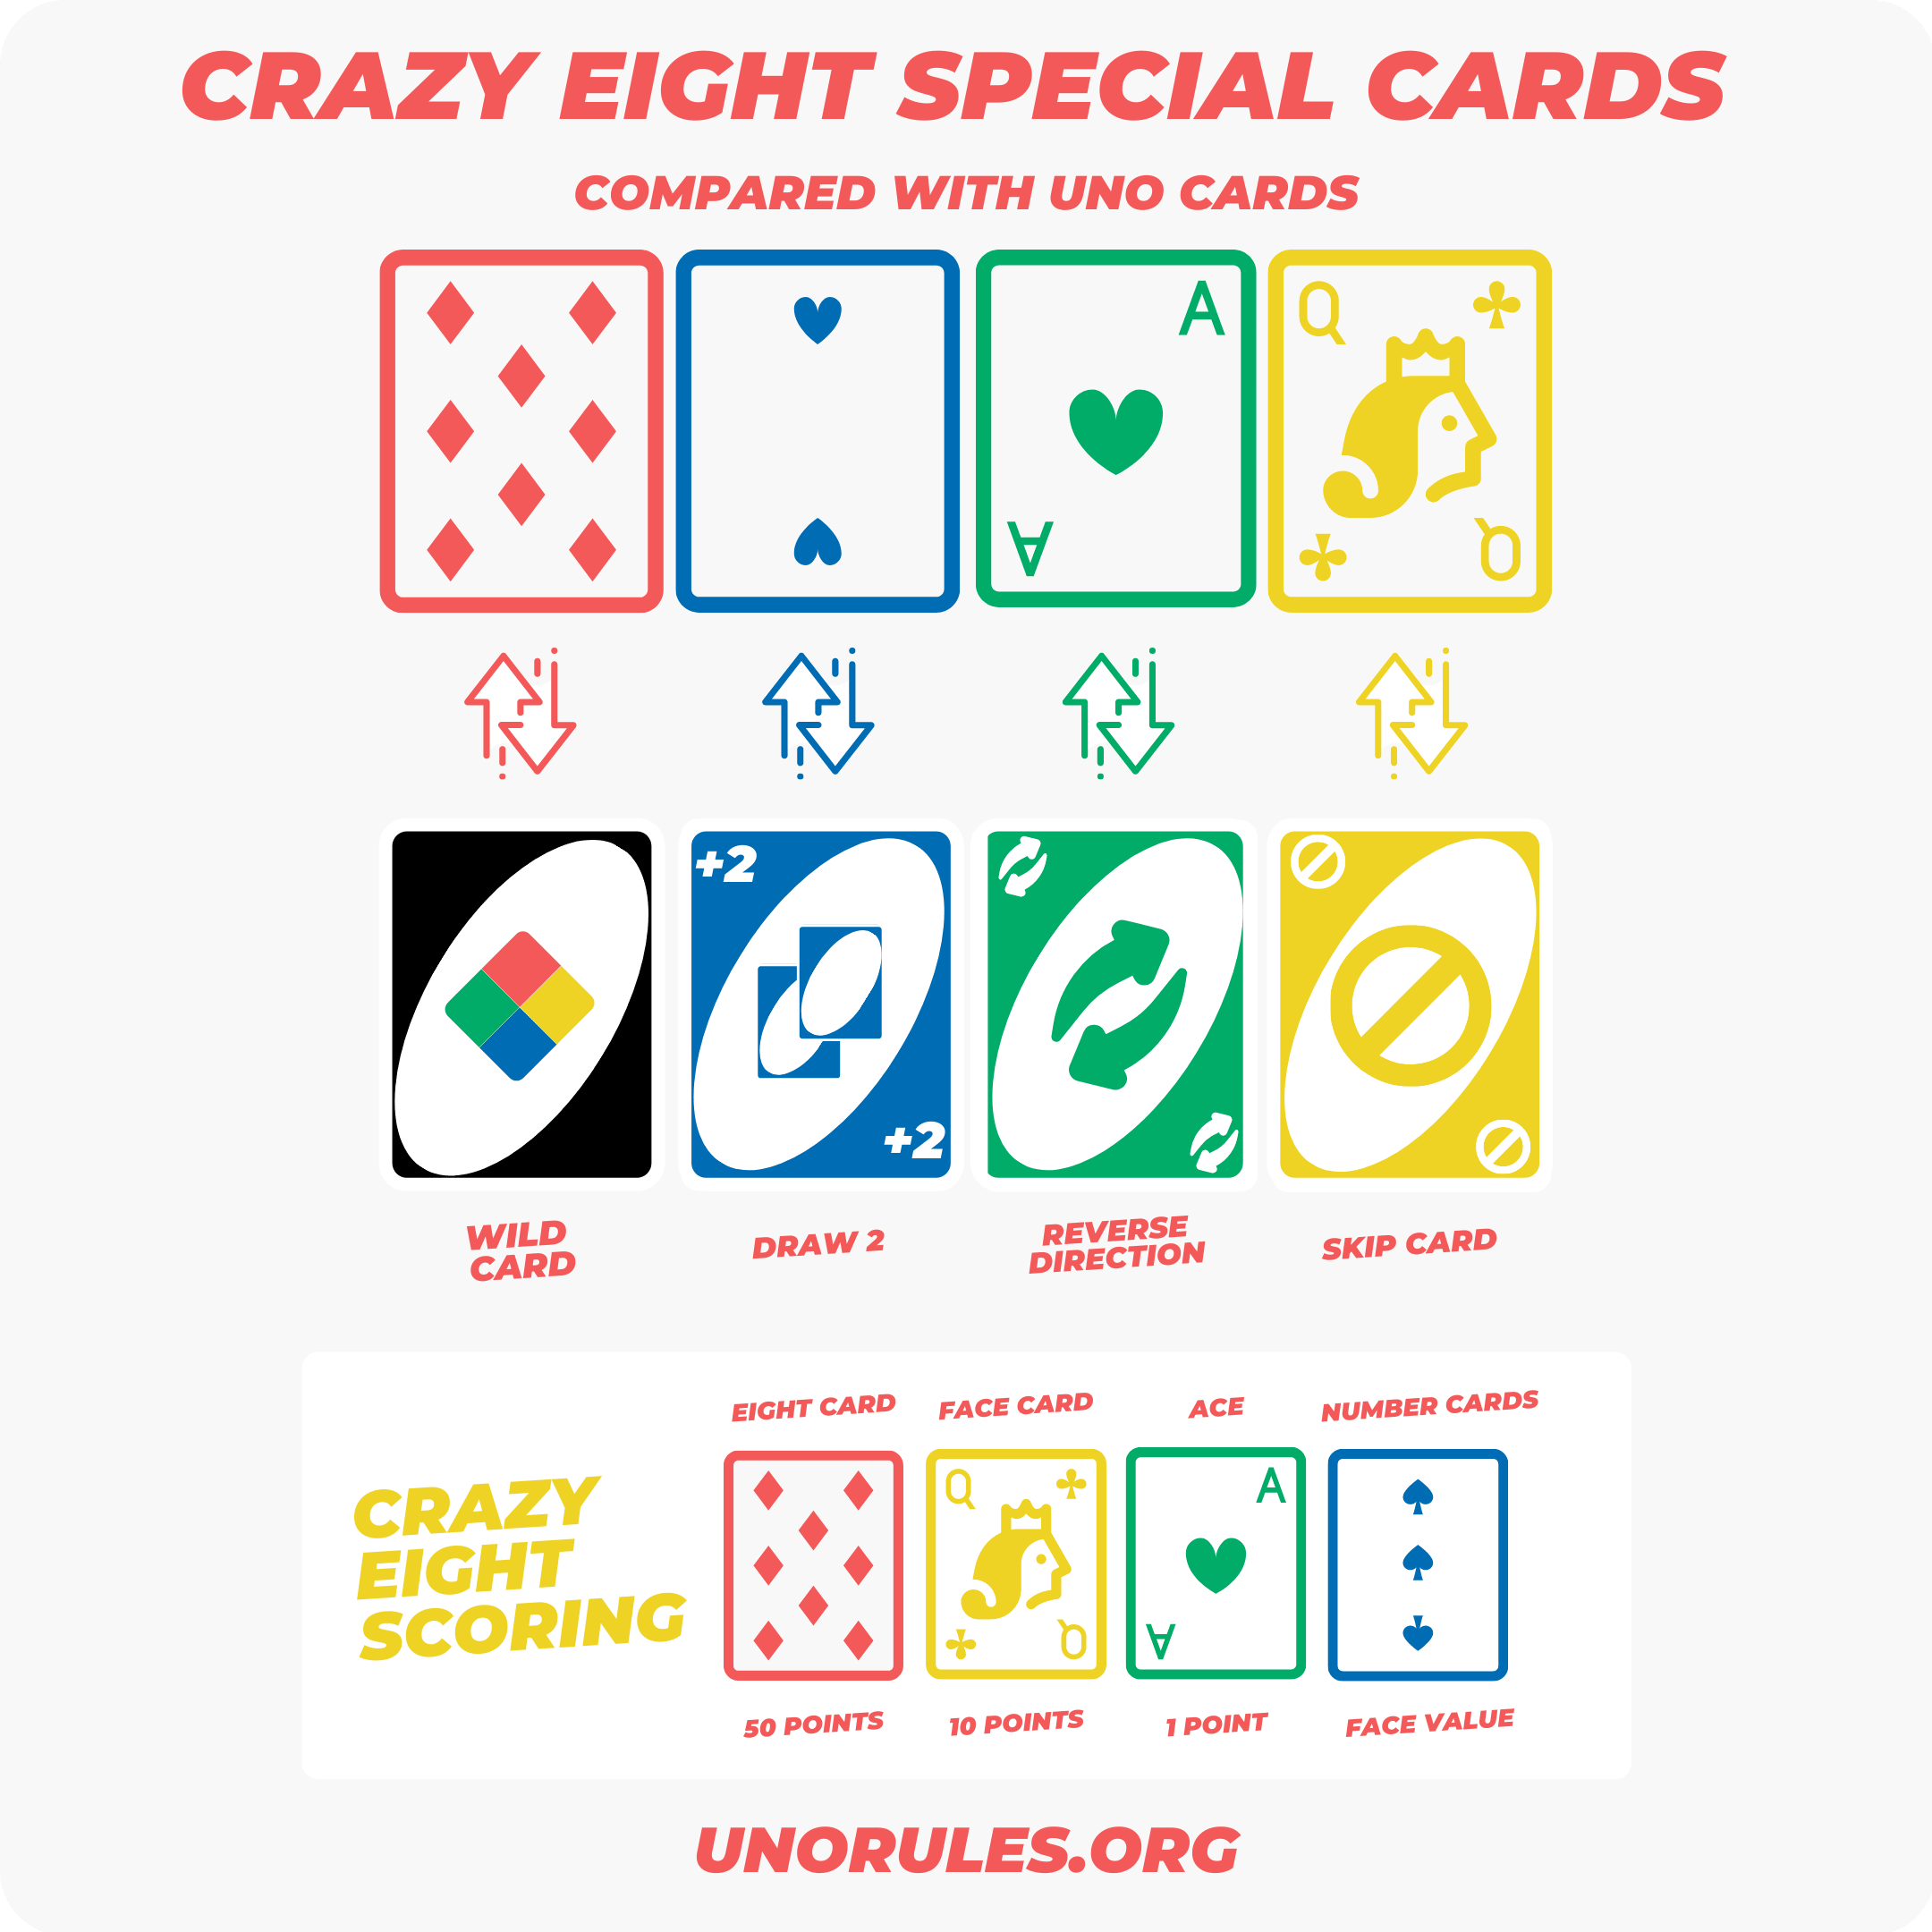 Crazy Eights special cards and scoring